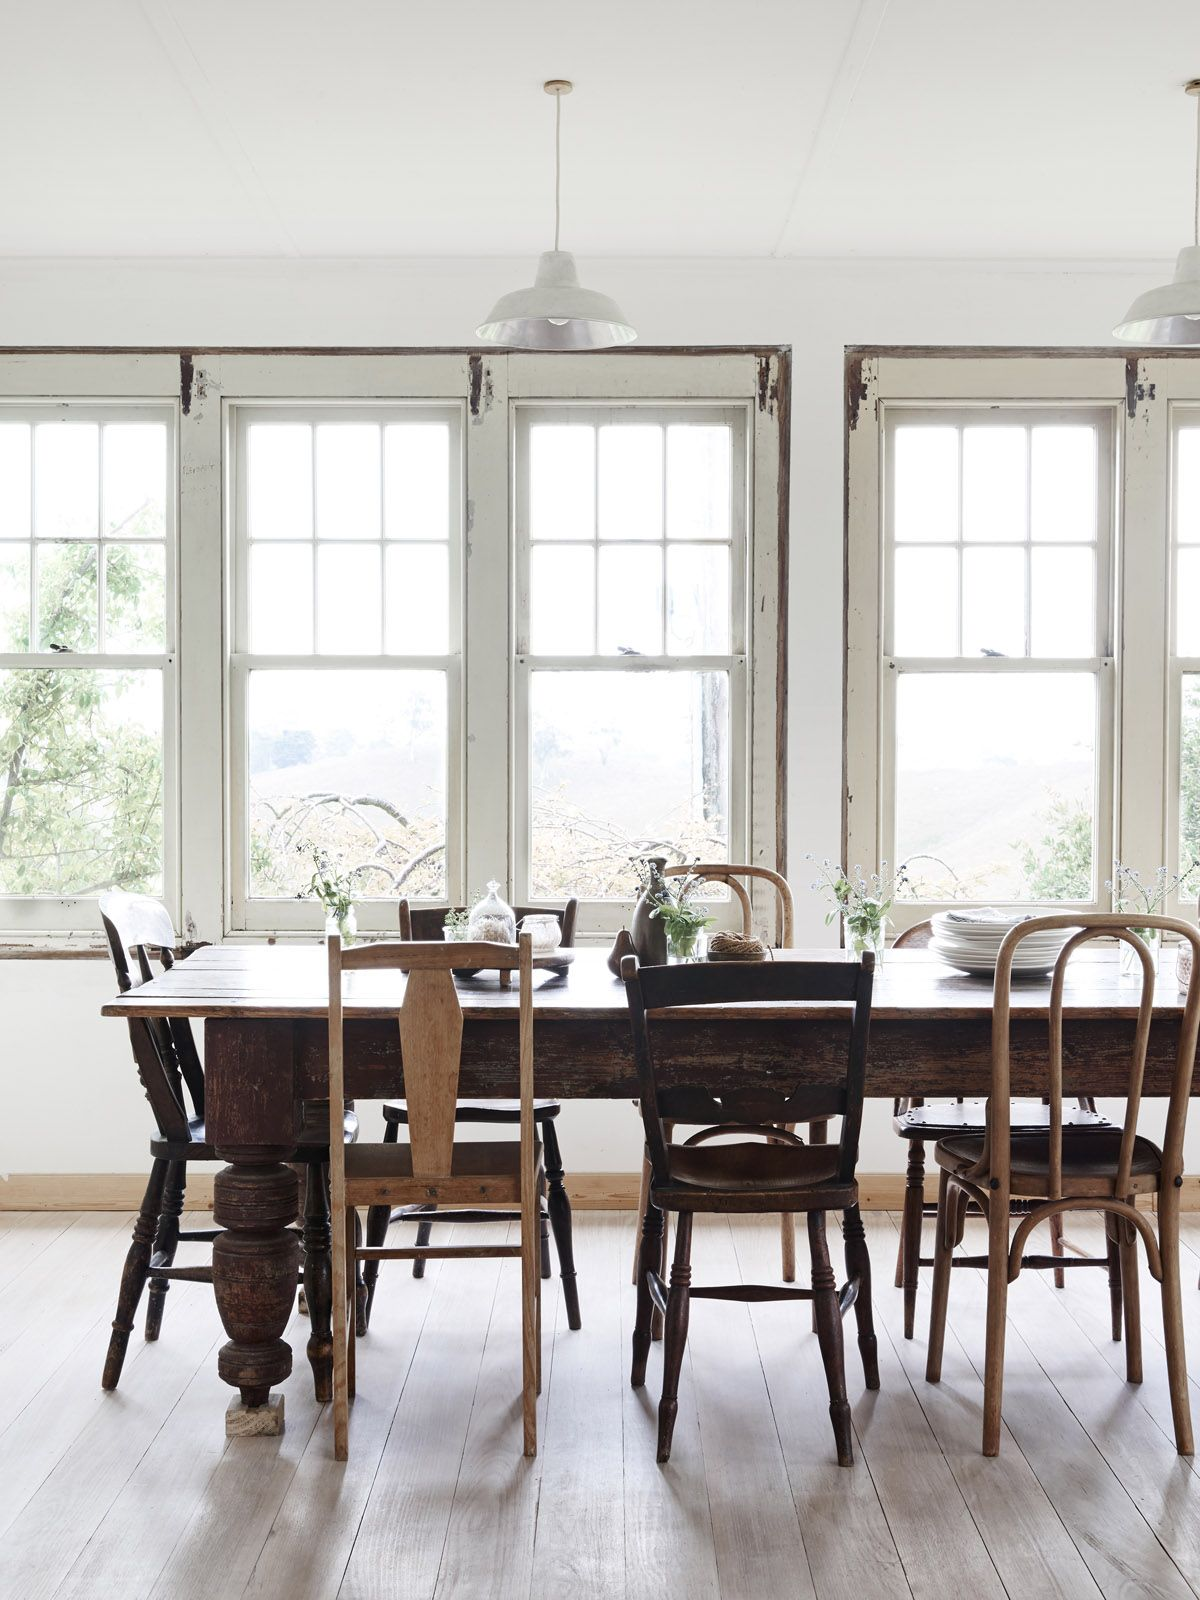 Simple dining room Farm table Mixed chairs